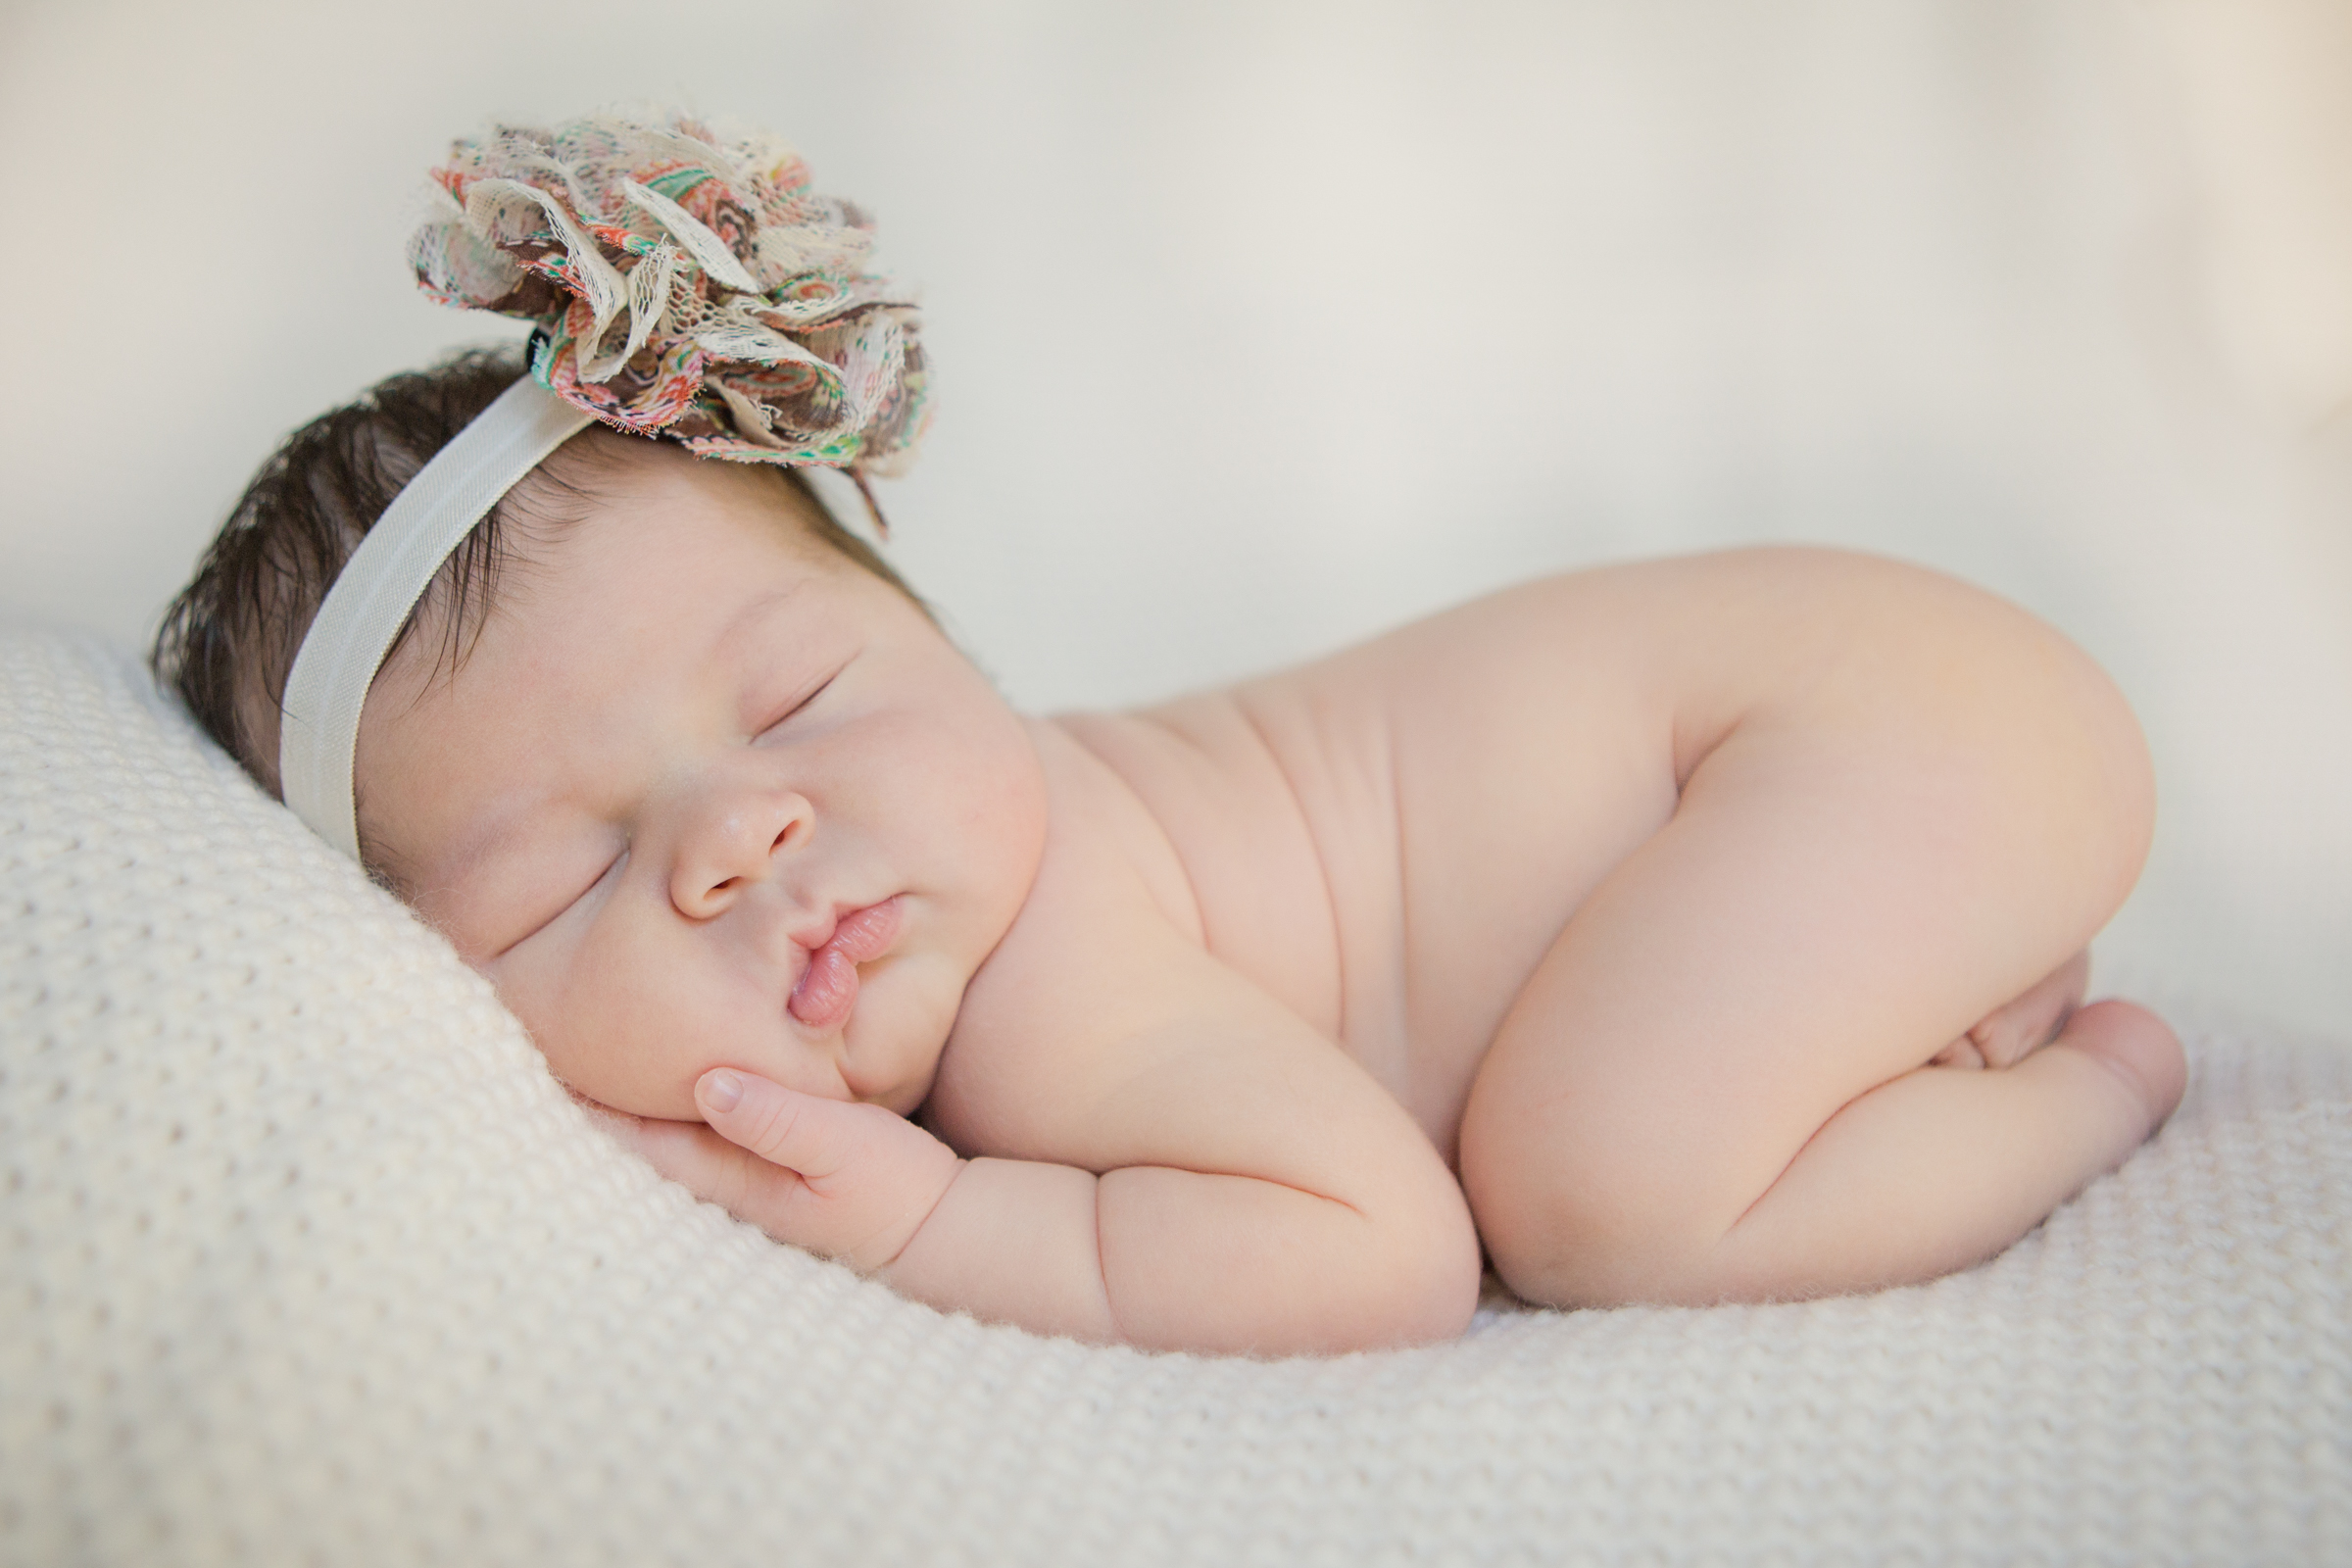 mcp-5 Editing a Newborn in a Few Clicks with Baby Lightroom Presets Blueprints Guest Bloggers Lightroom Presets